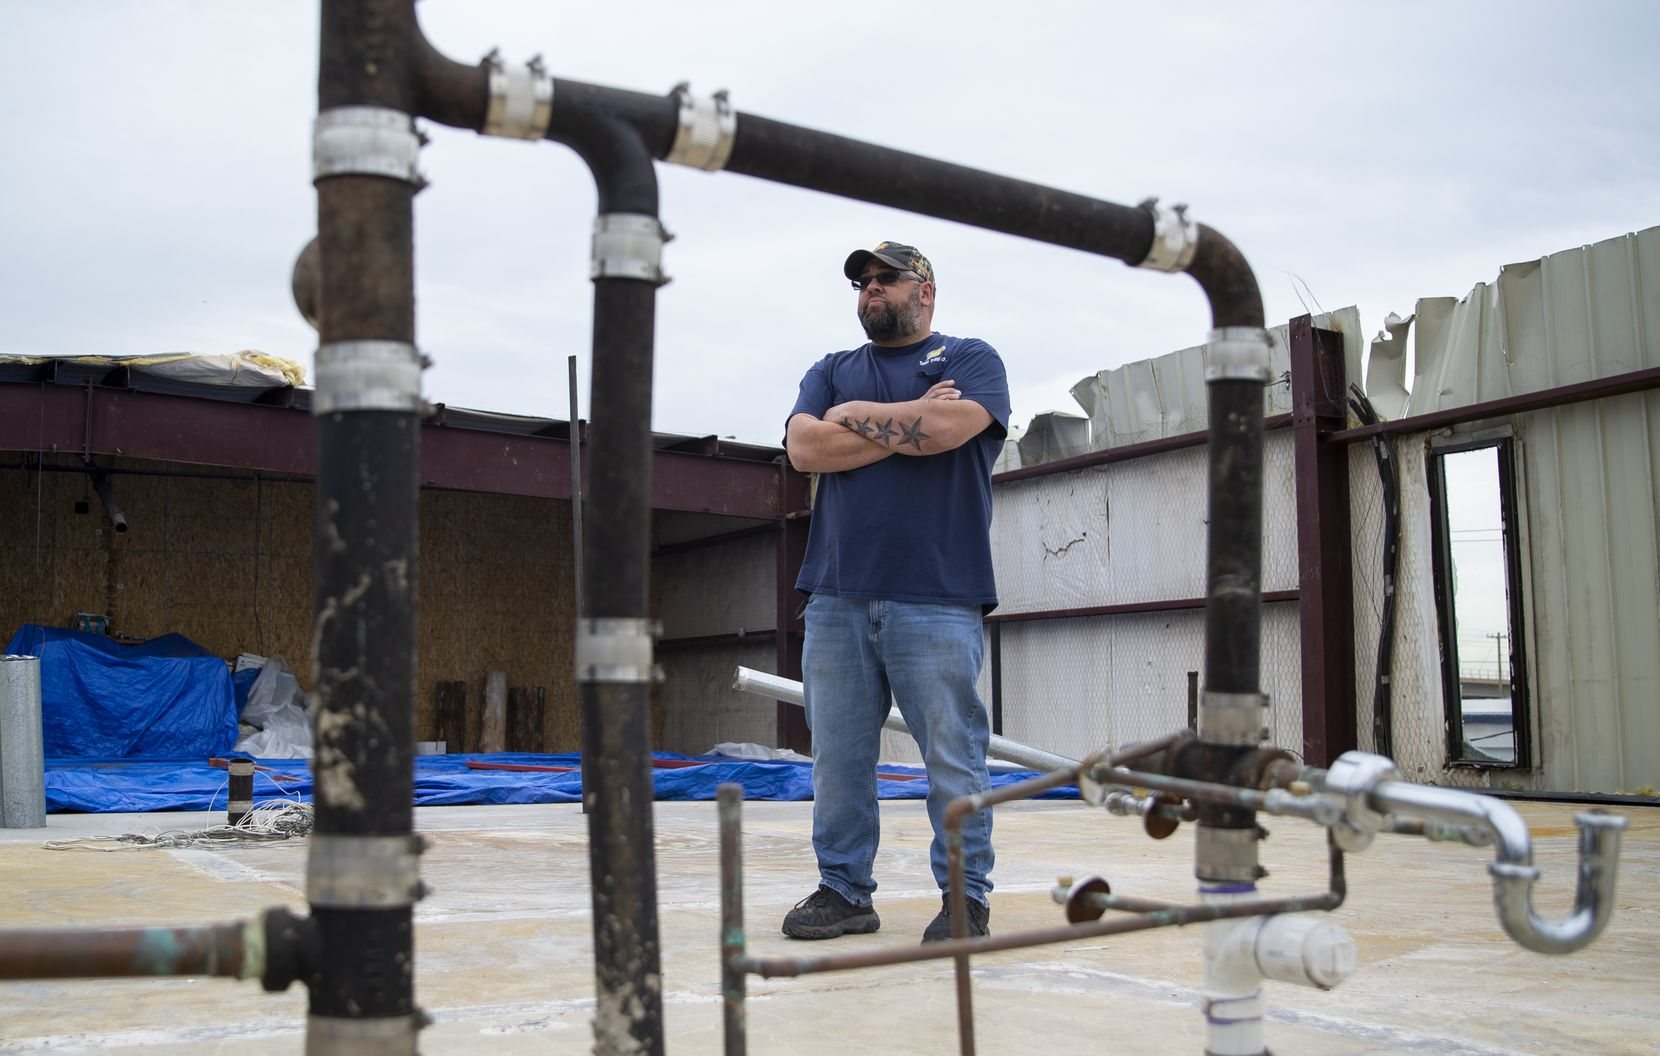 """Nick Edwards, owner of Star Tire, stands in the space that used to be his office. Today, he jokes, it's essentially """"an open-air deck"""" with a view of the ruins across Harry Hines Boulevard."""